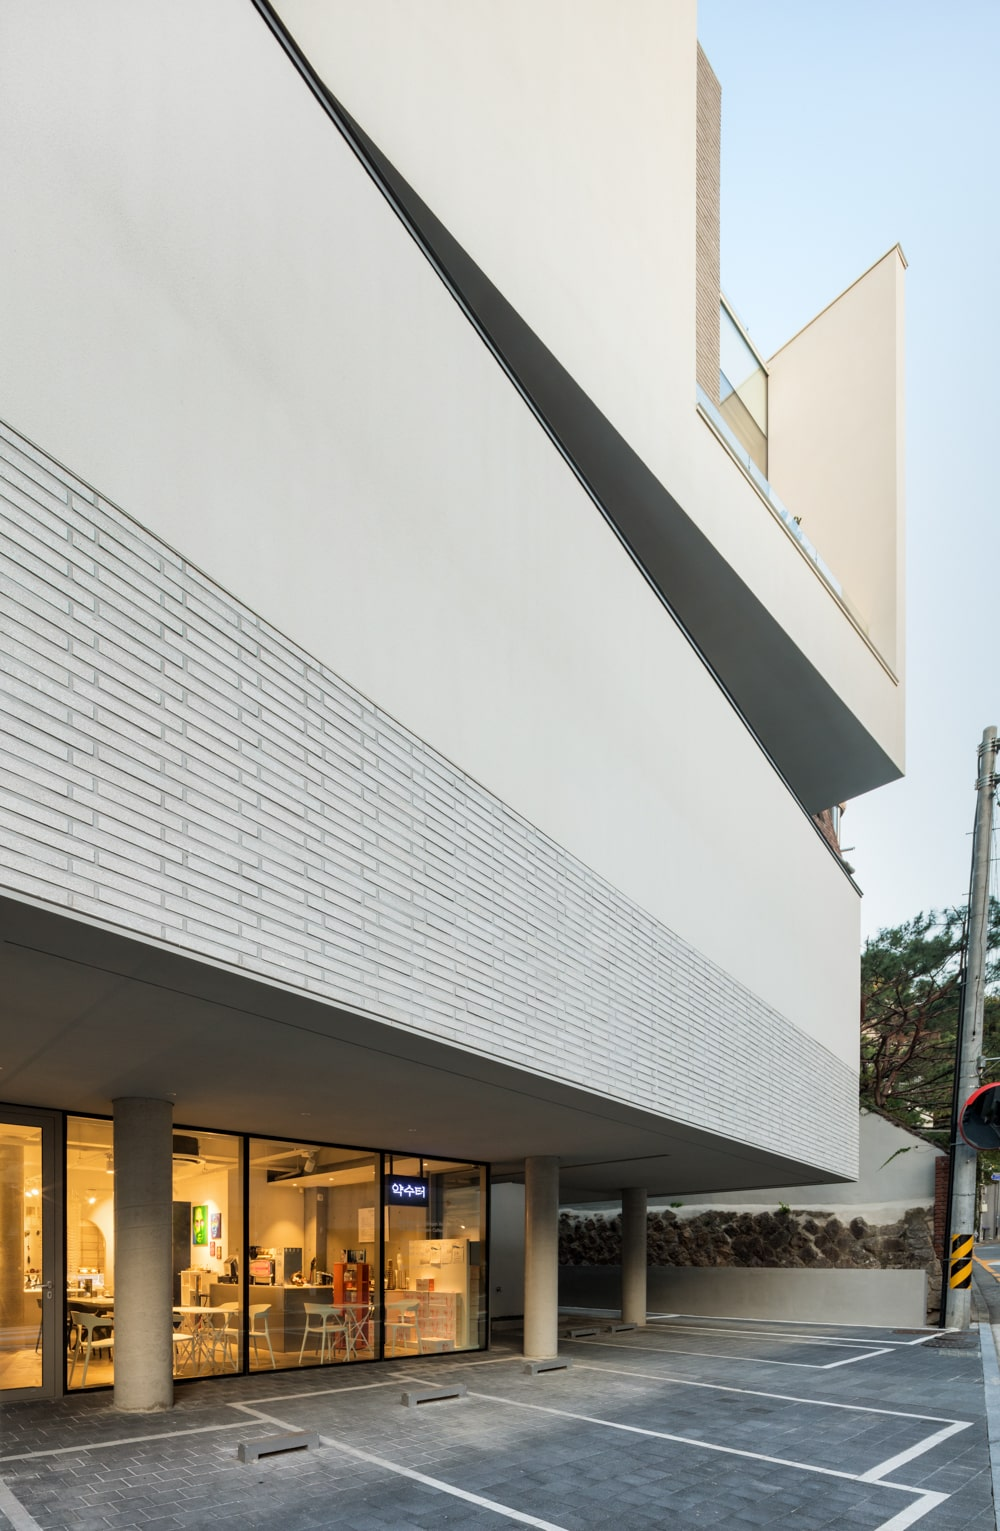 The wall above the main entrance of the building has a wall tile accent to it resembling bricks.